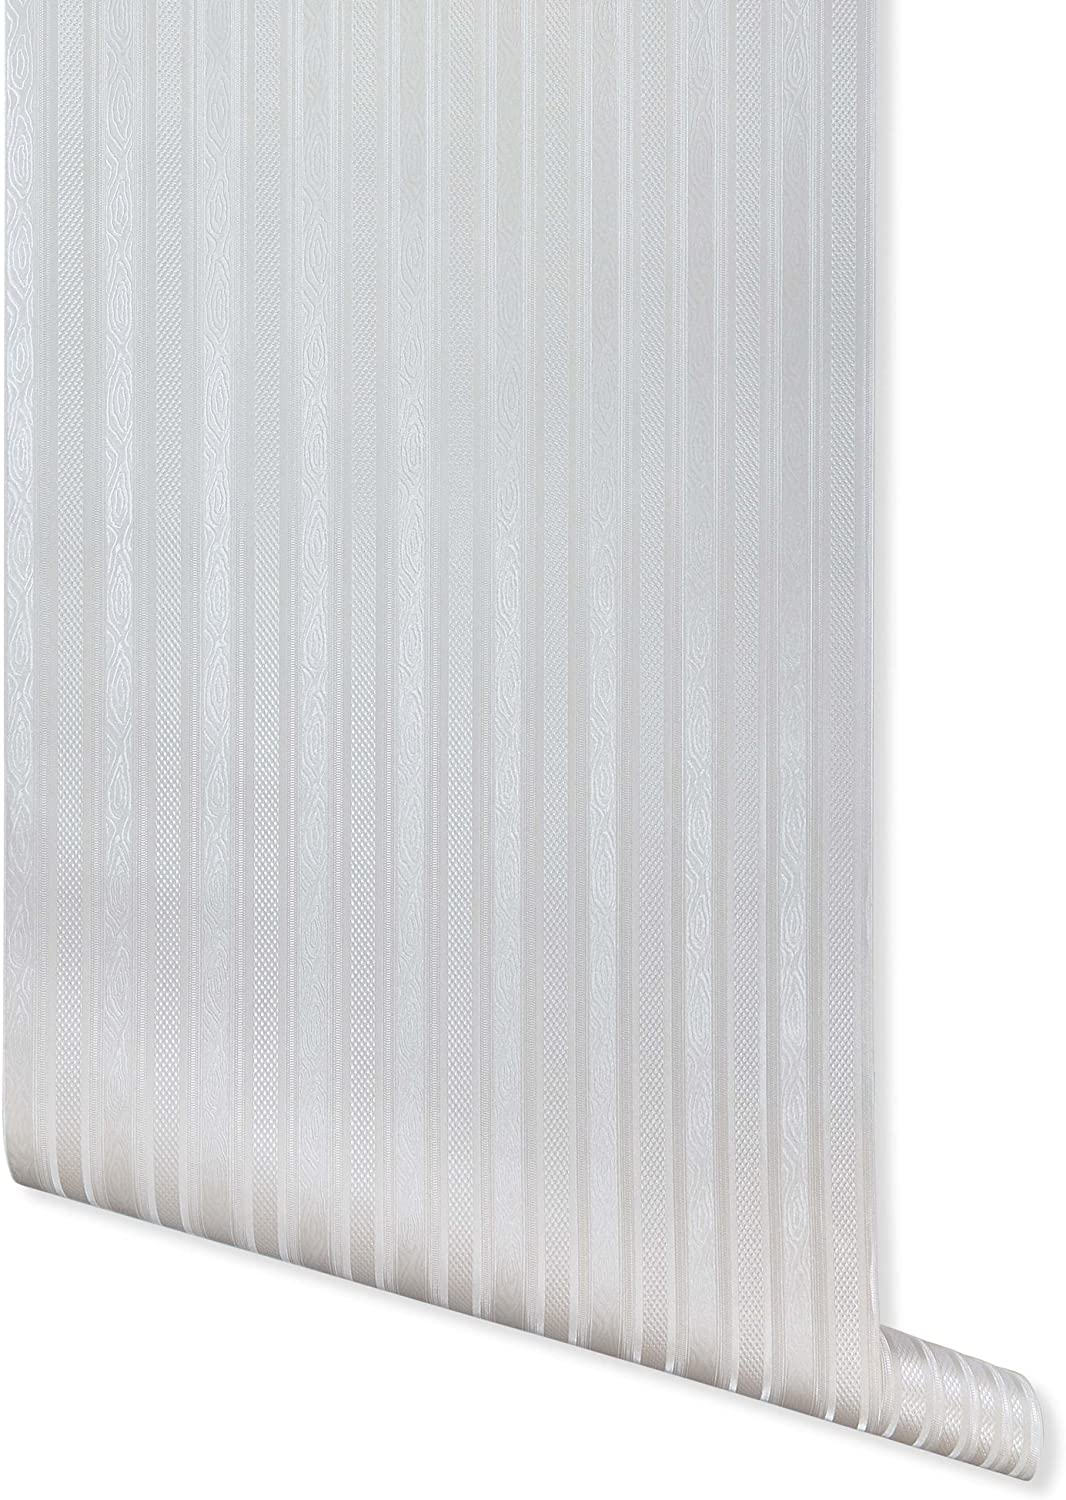 Boudin Stripe, White Textured Wallpaper for Walls - Double Roll - Romosa Wallcoverings AH7052